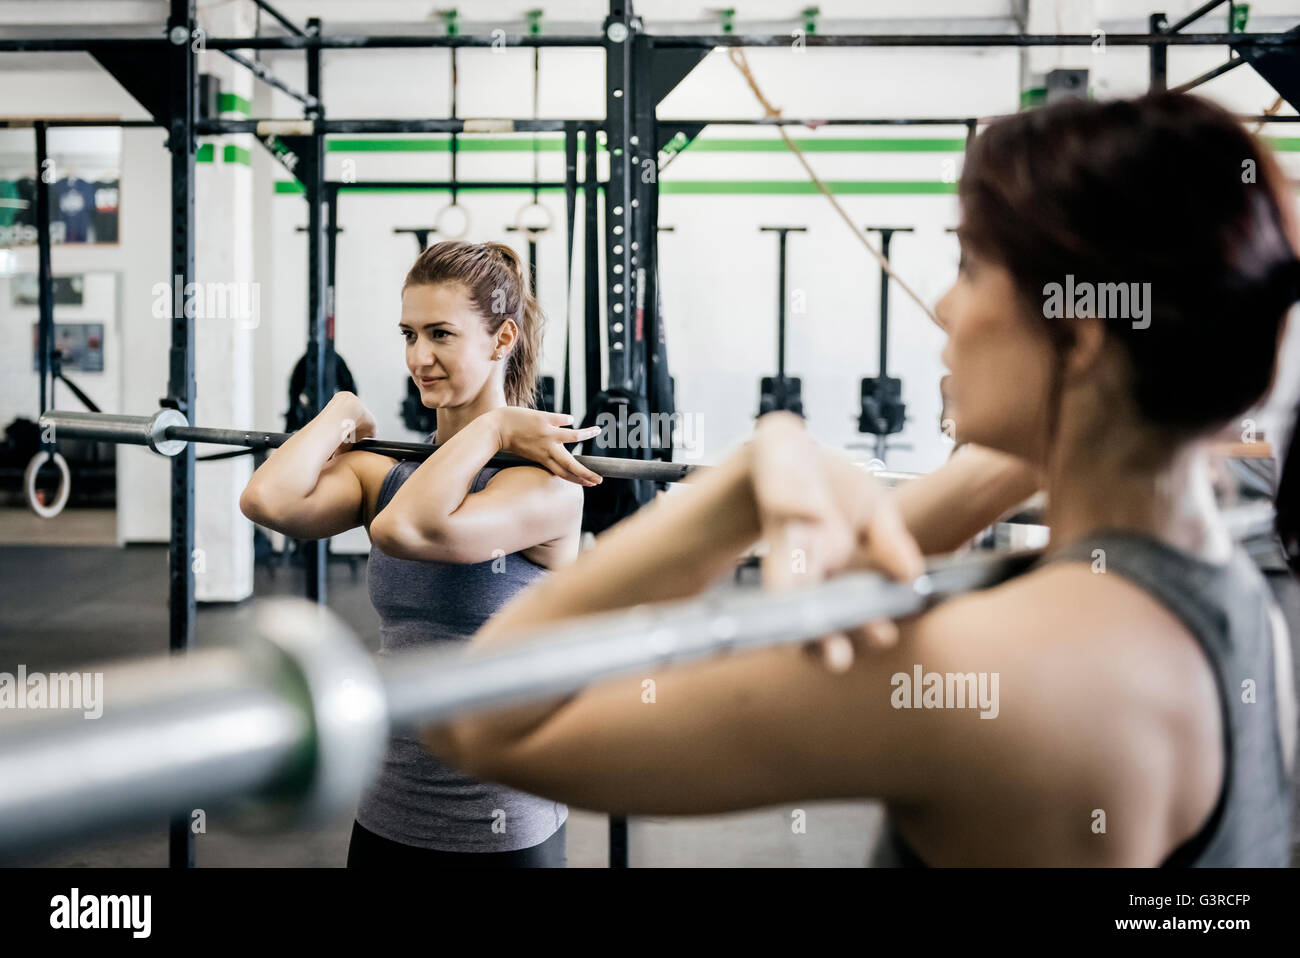 Germany, Two young women weightlifting in gym - Stock Image